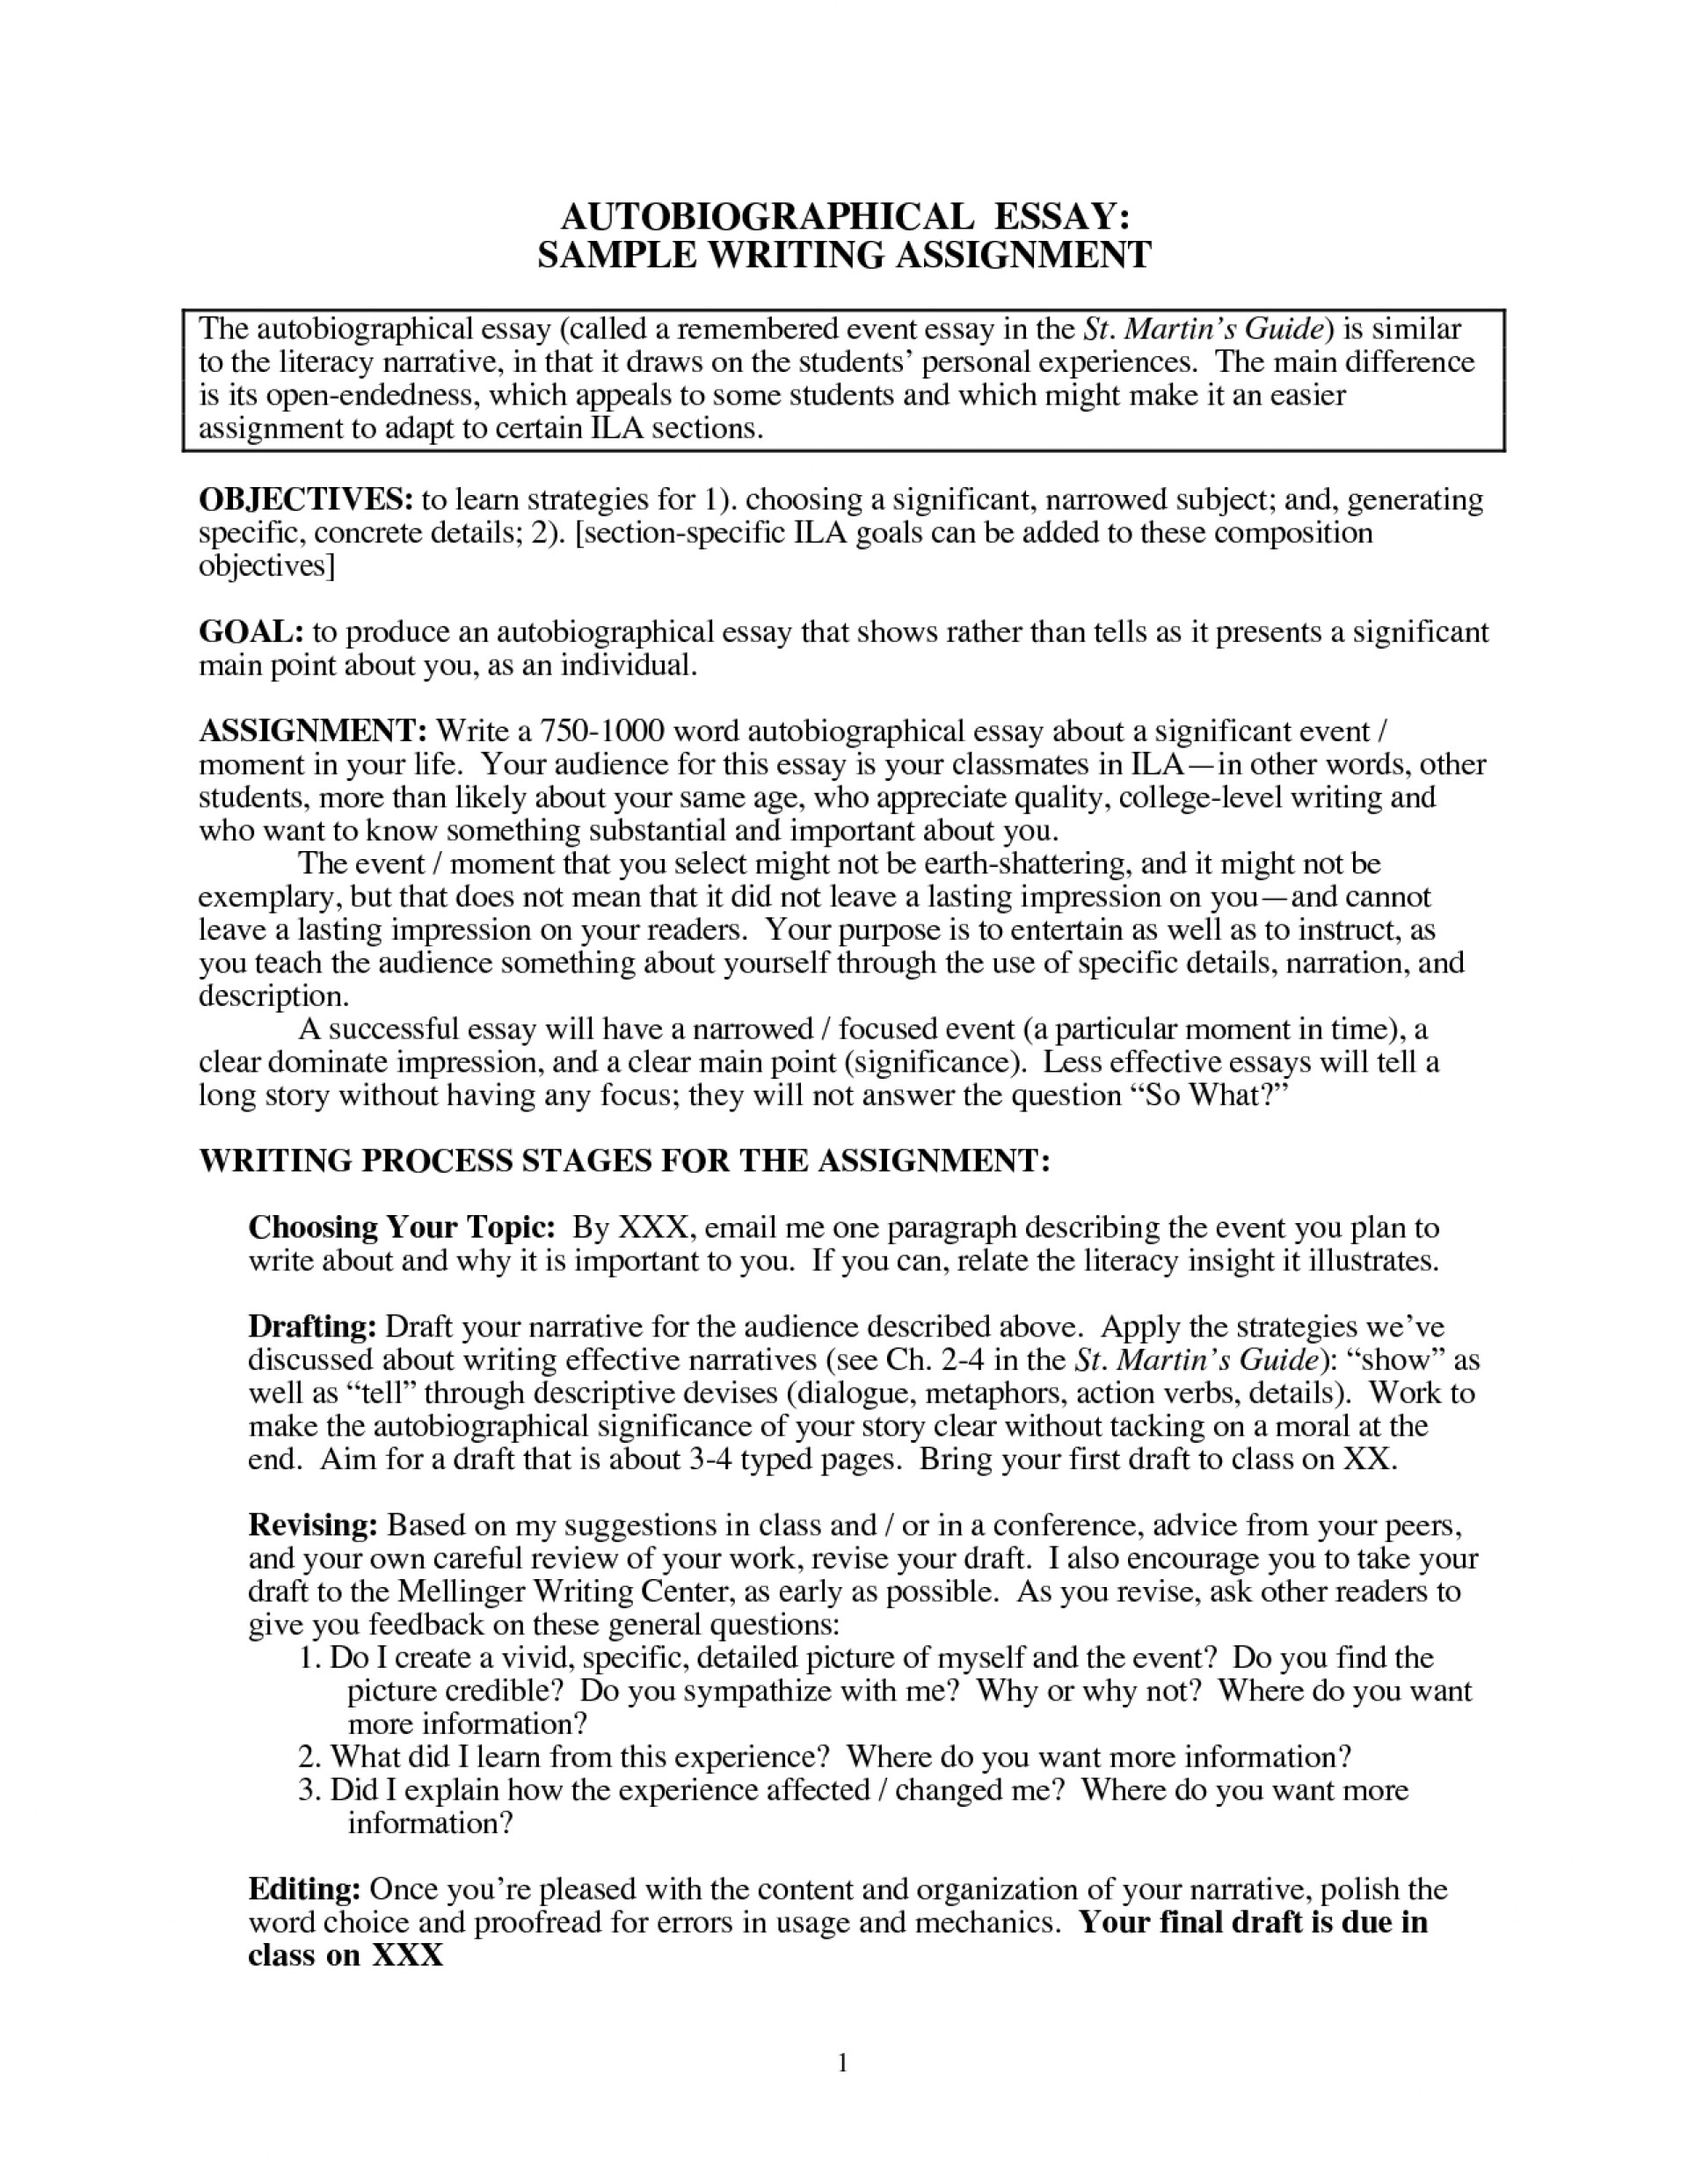 026 essay example driscoll timeline how to write good